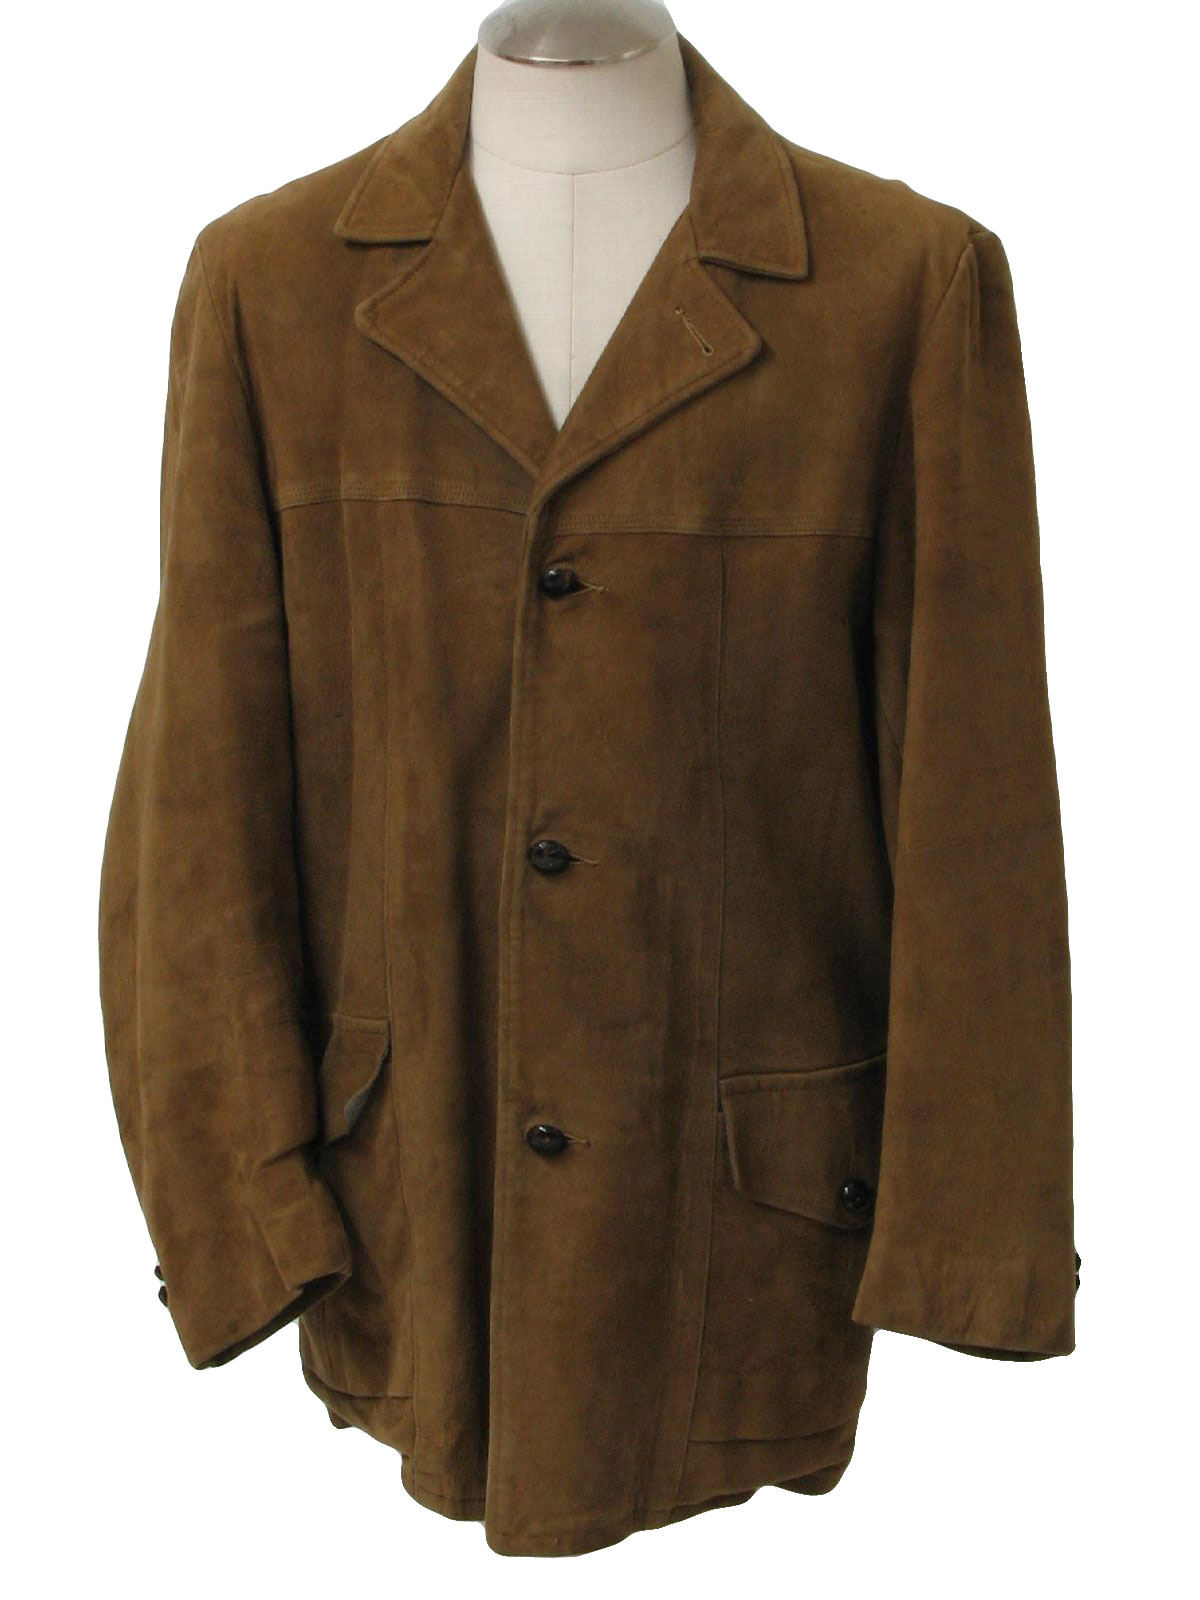 Brown Long Jacket - My Jacket